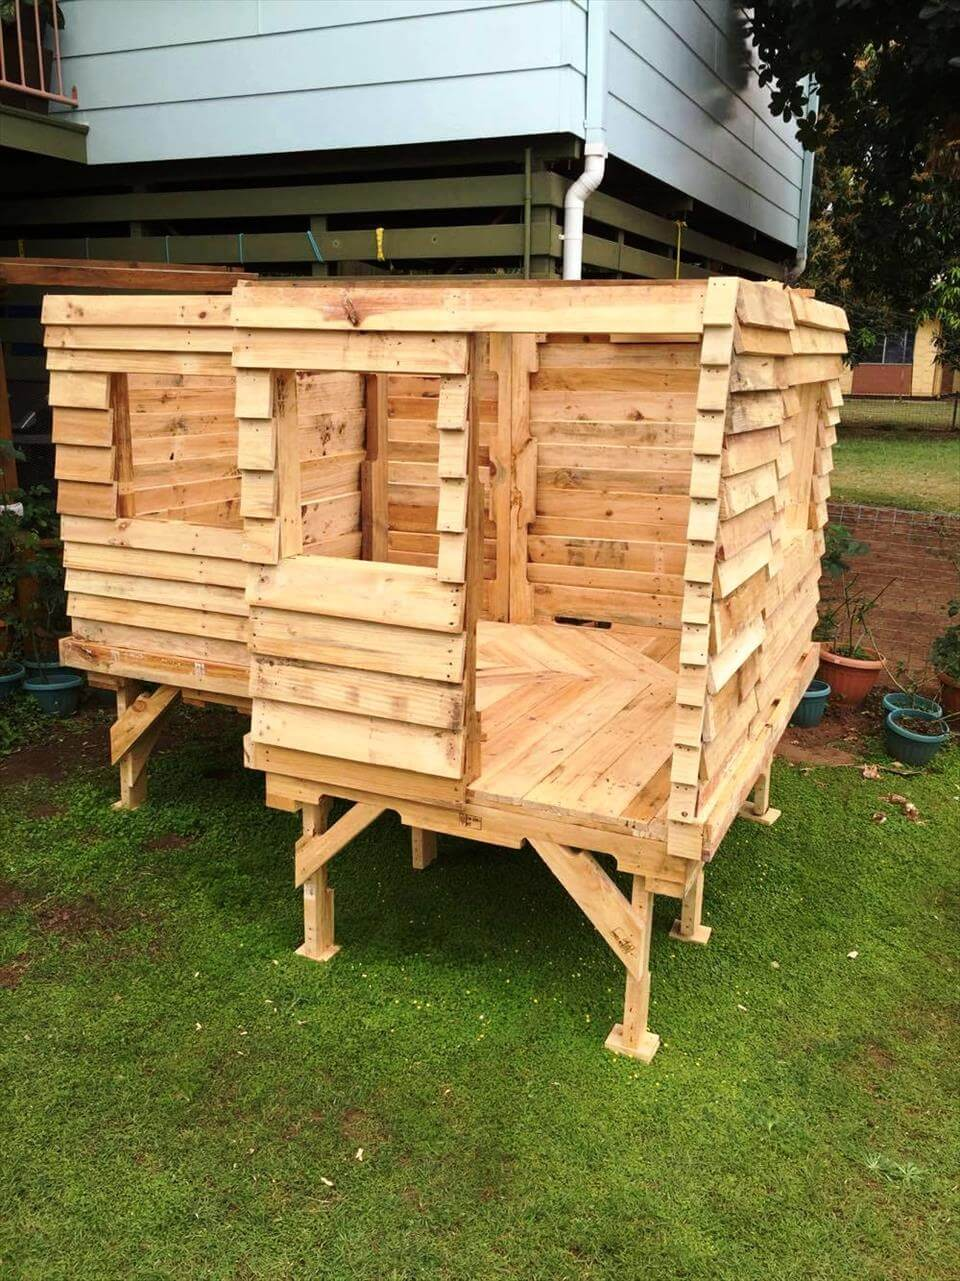 Wood Pallet House Pallet Cubby House